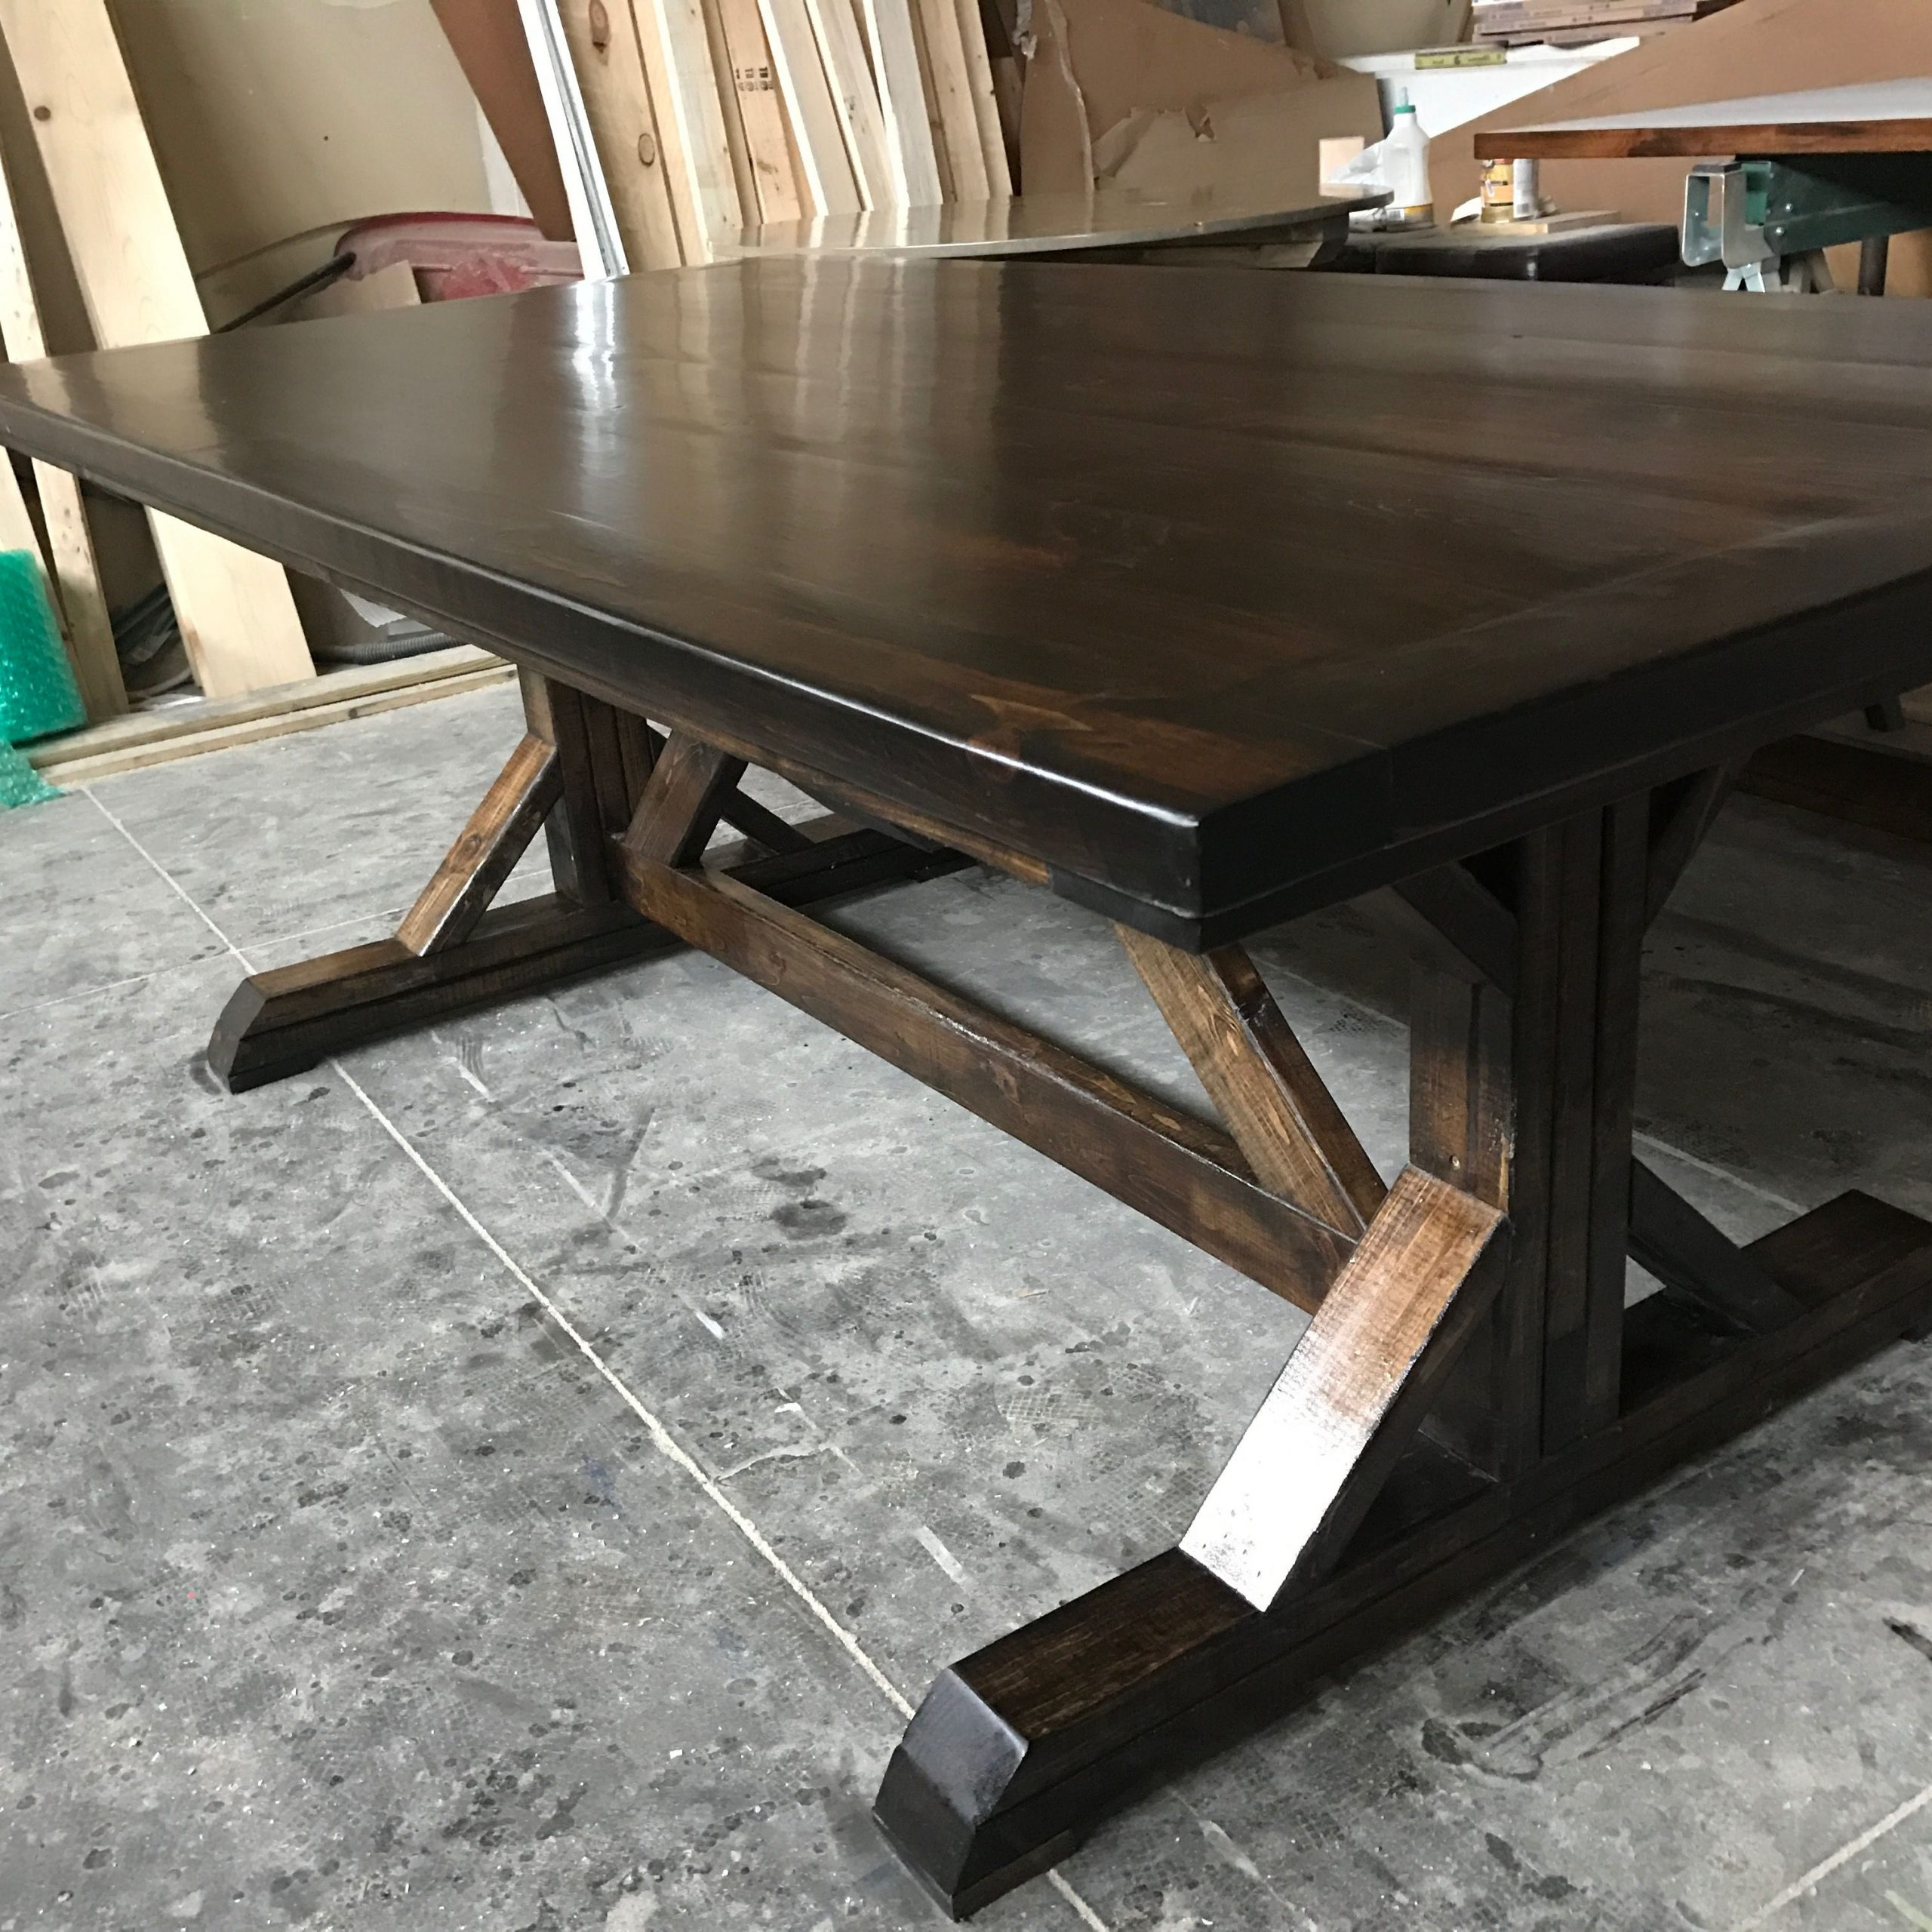 Thick White Marble Slab Dining Tables With Weathered Grey Finish With Regard To Popular Farm Trestle Table Done In Dark Browns With A Satin Finish (View 5 of 25)